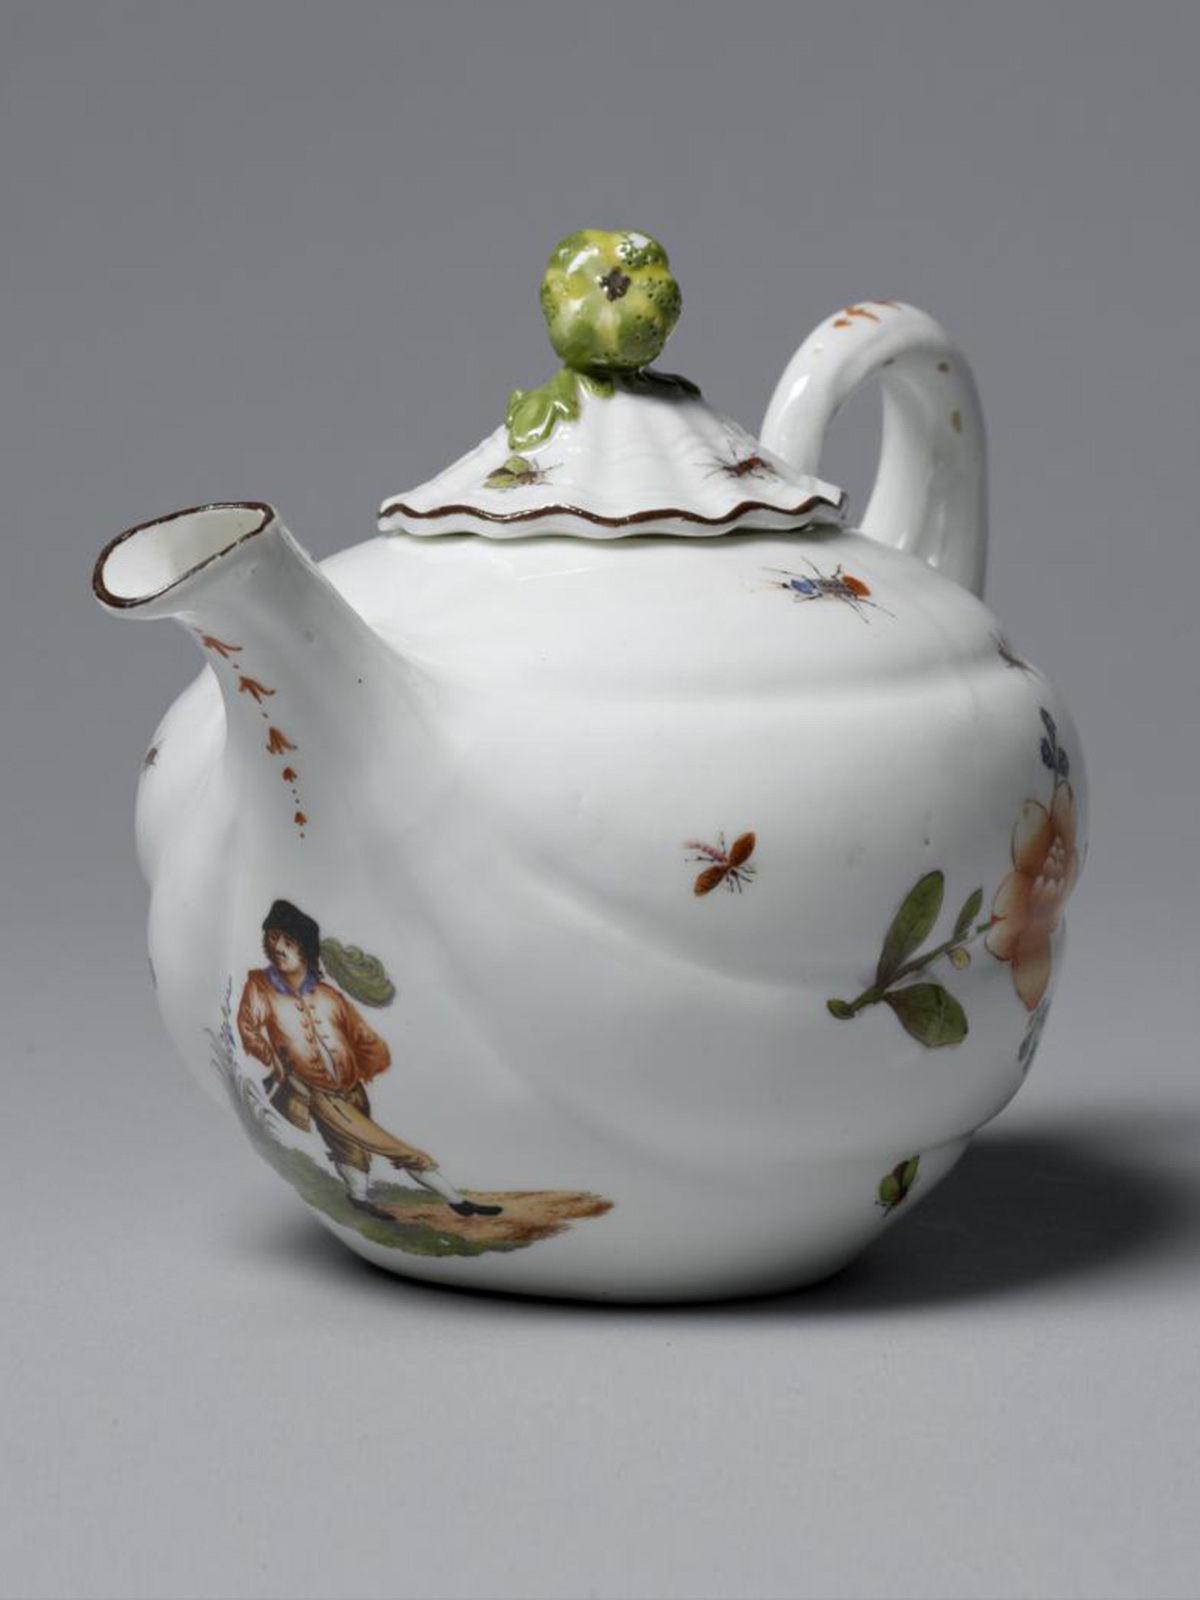 Meissen Melon shaped Teapot and Cover